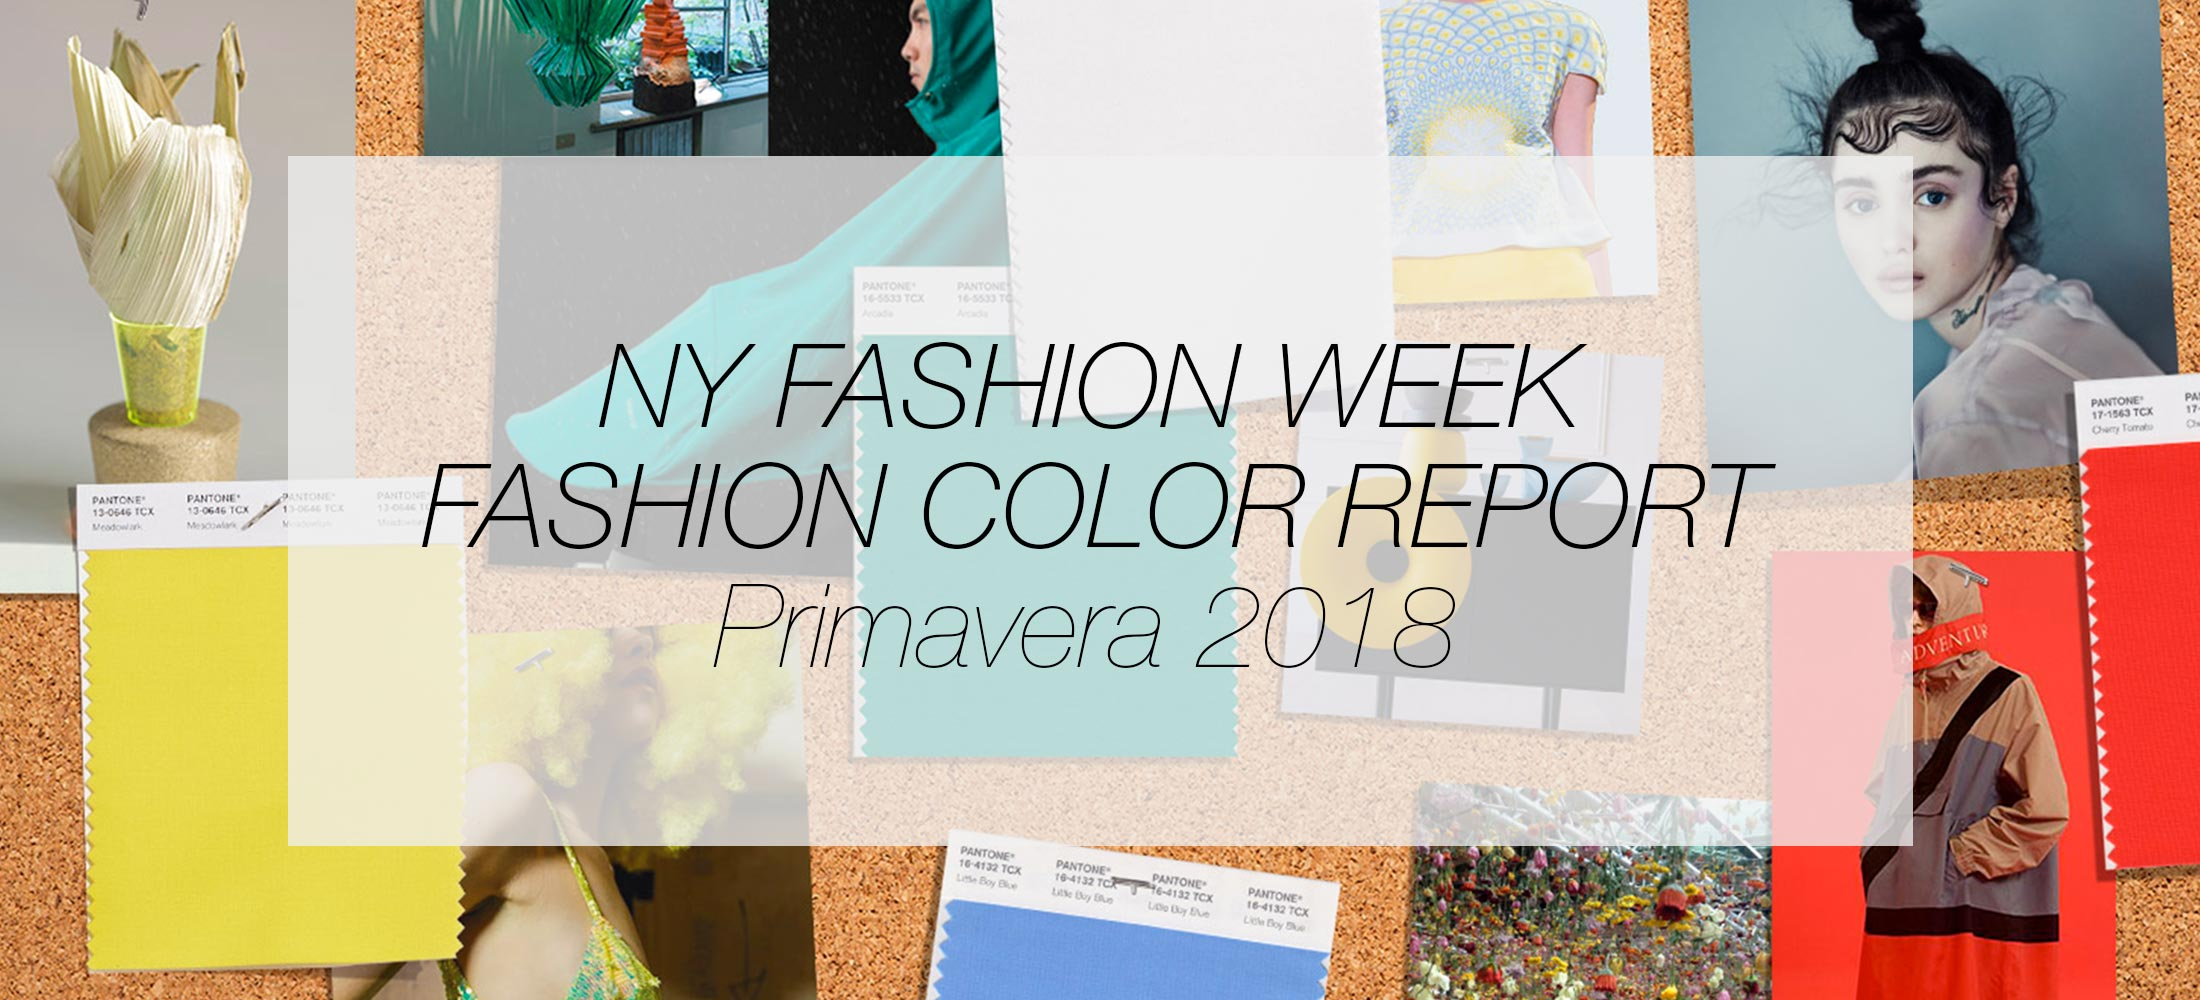 NY Fashion Week - Primavera 2018